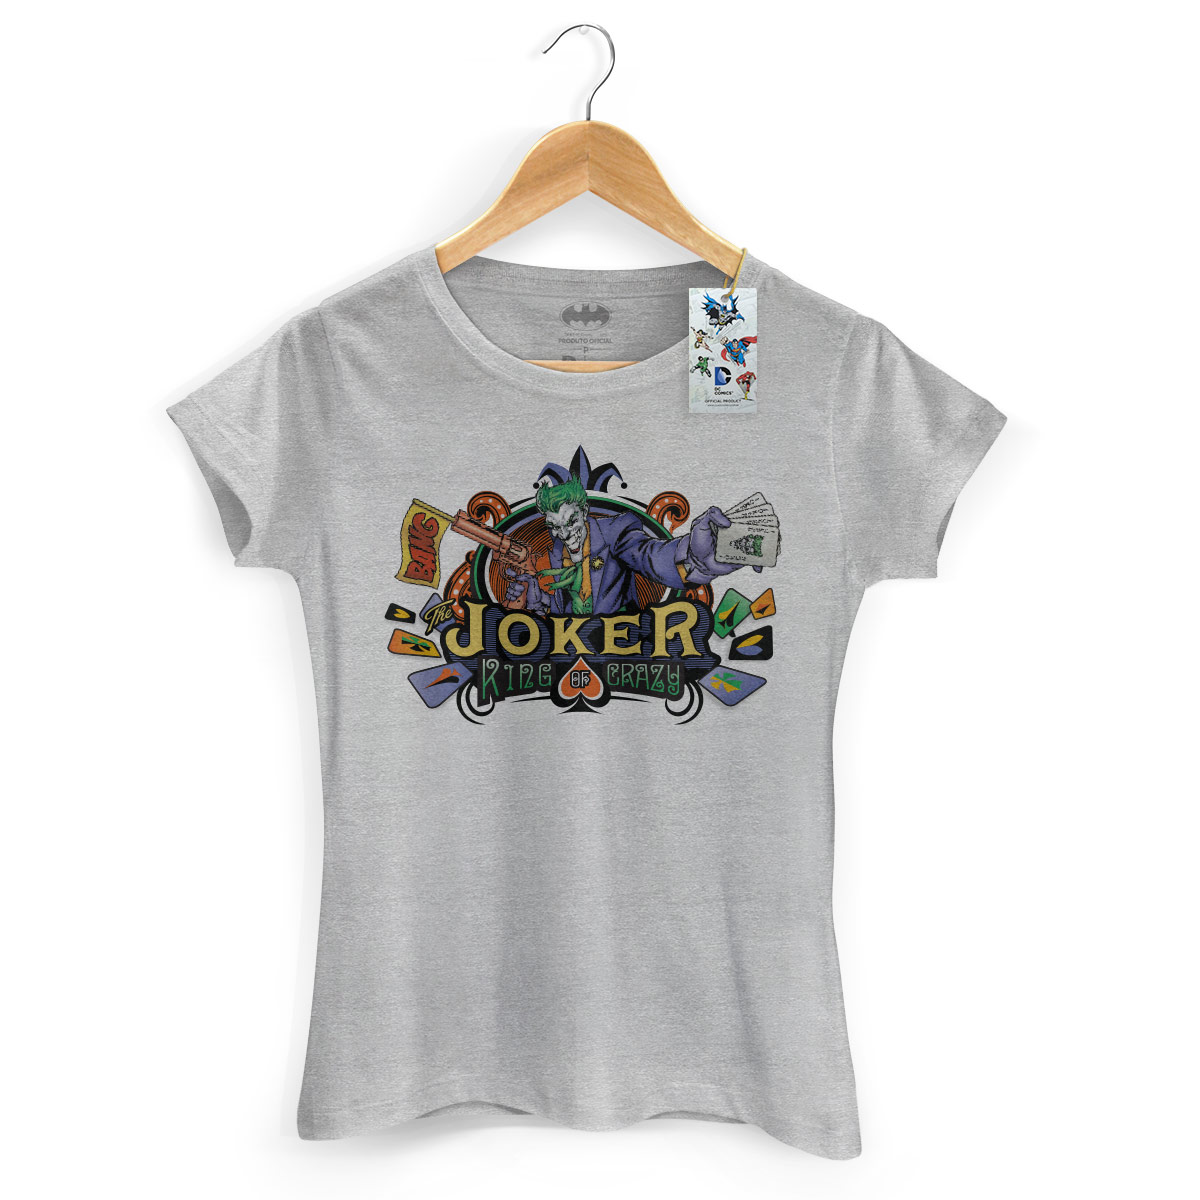 Camiseta Feminina The Joker King Of Crazy